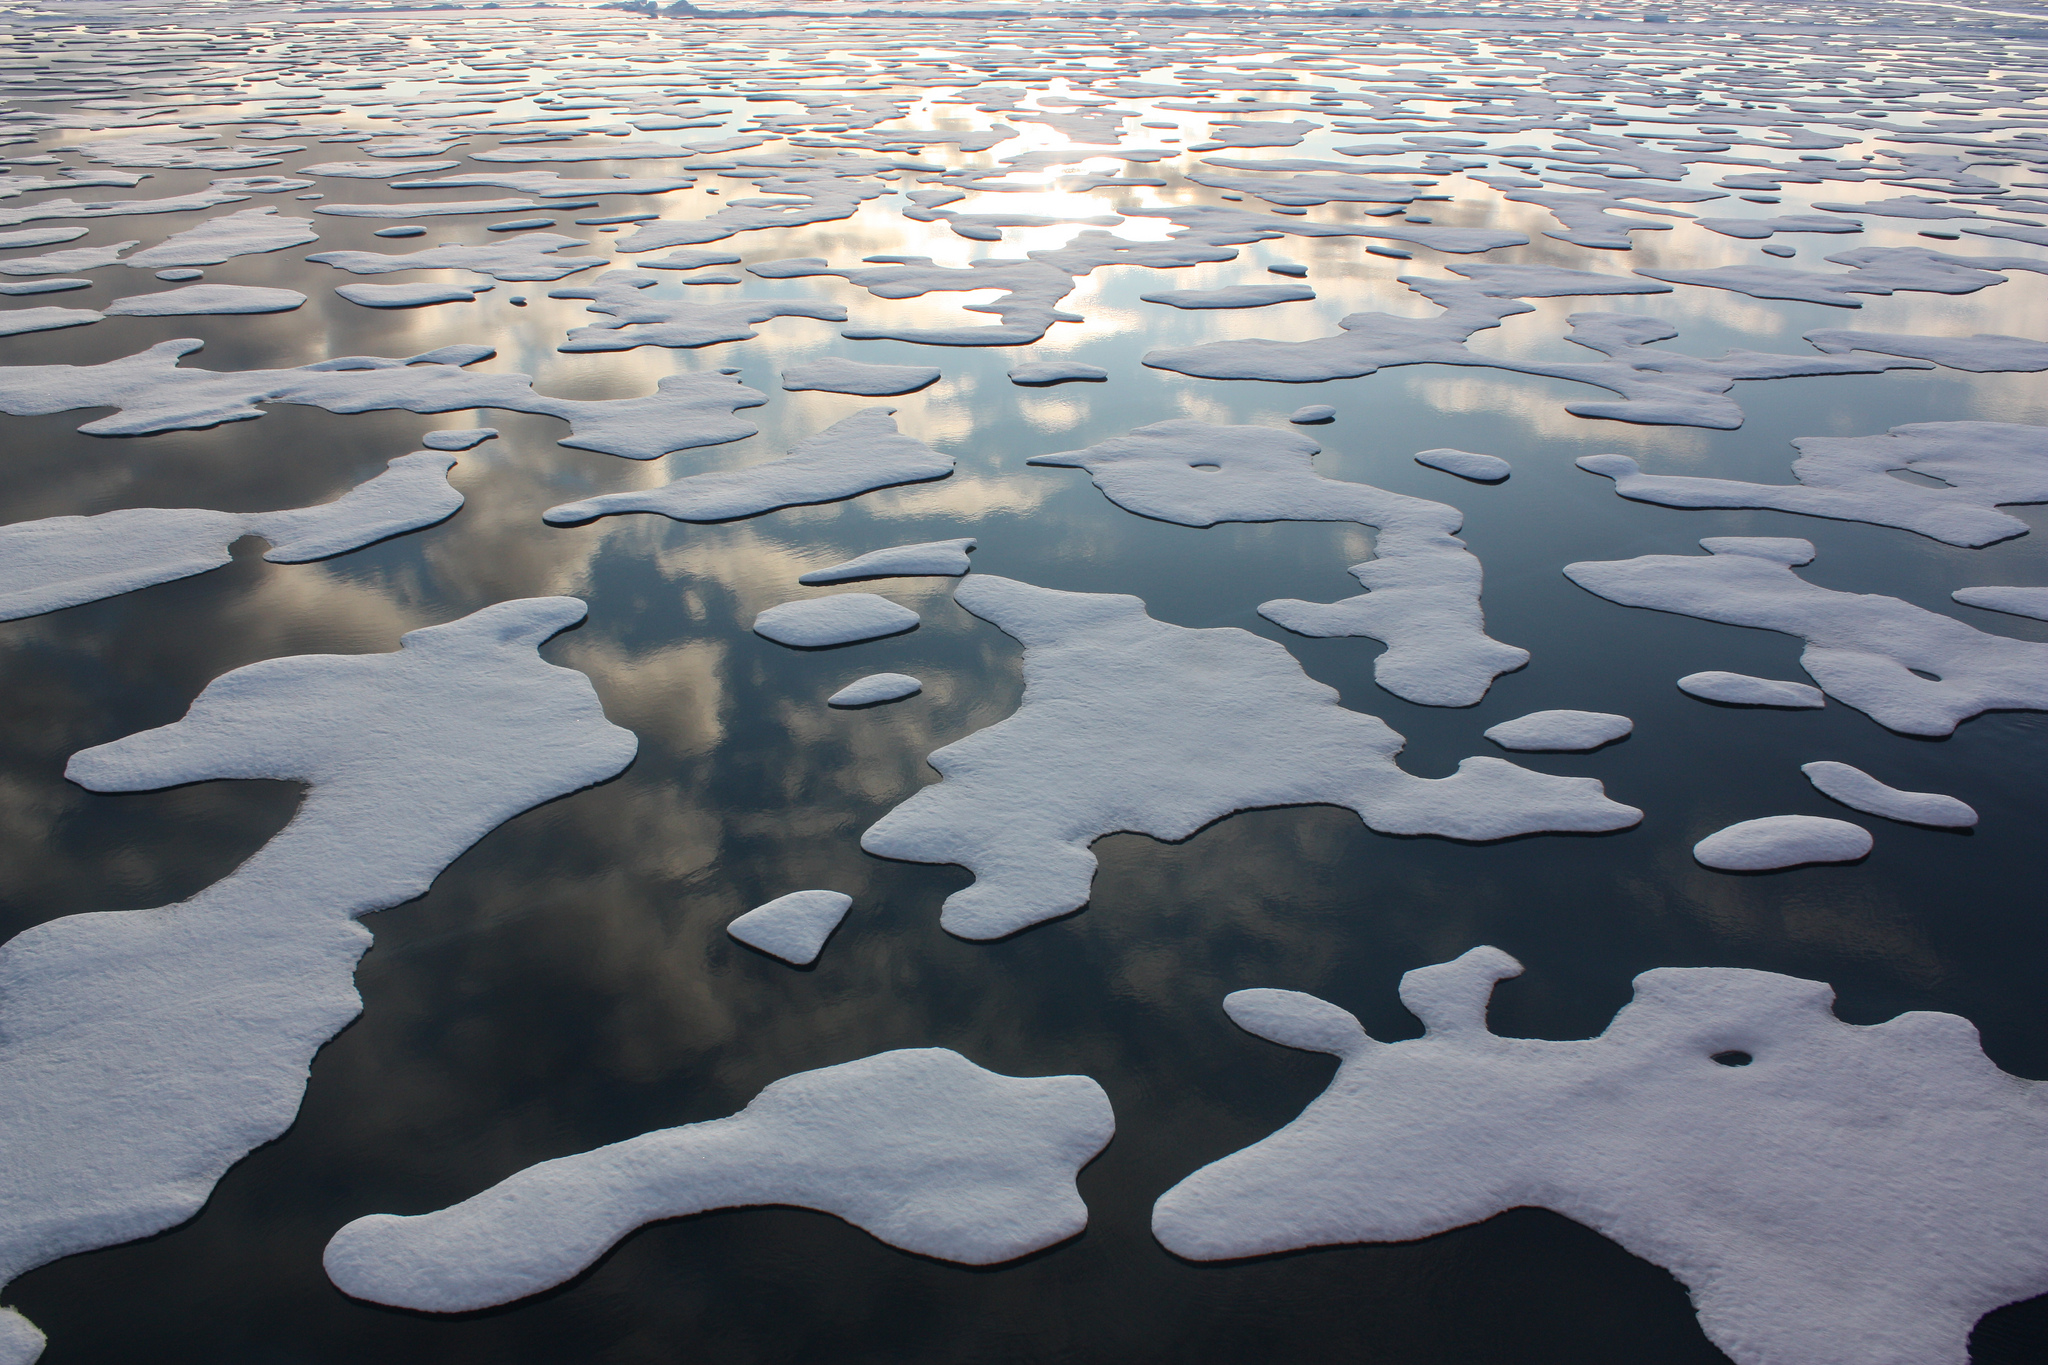 Melting Ice Adds Life To The Sea